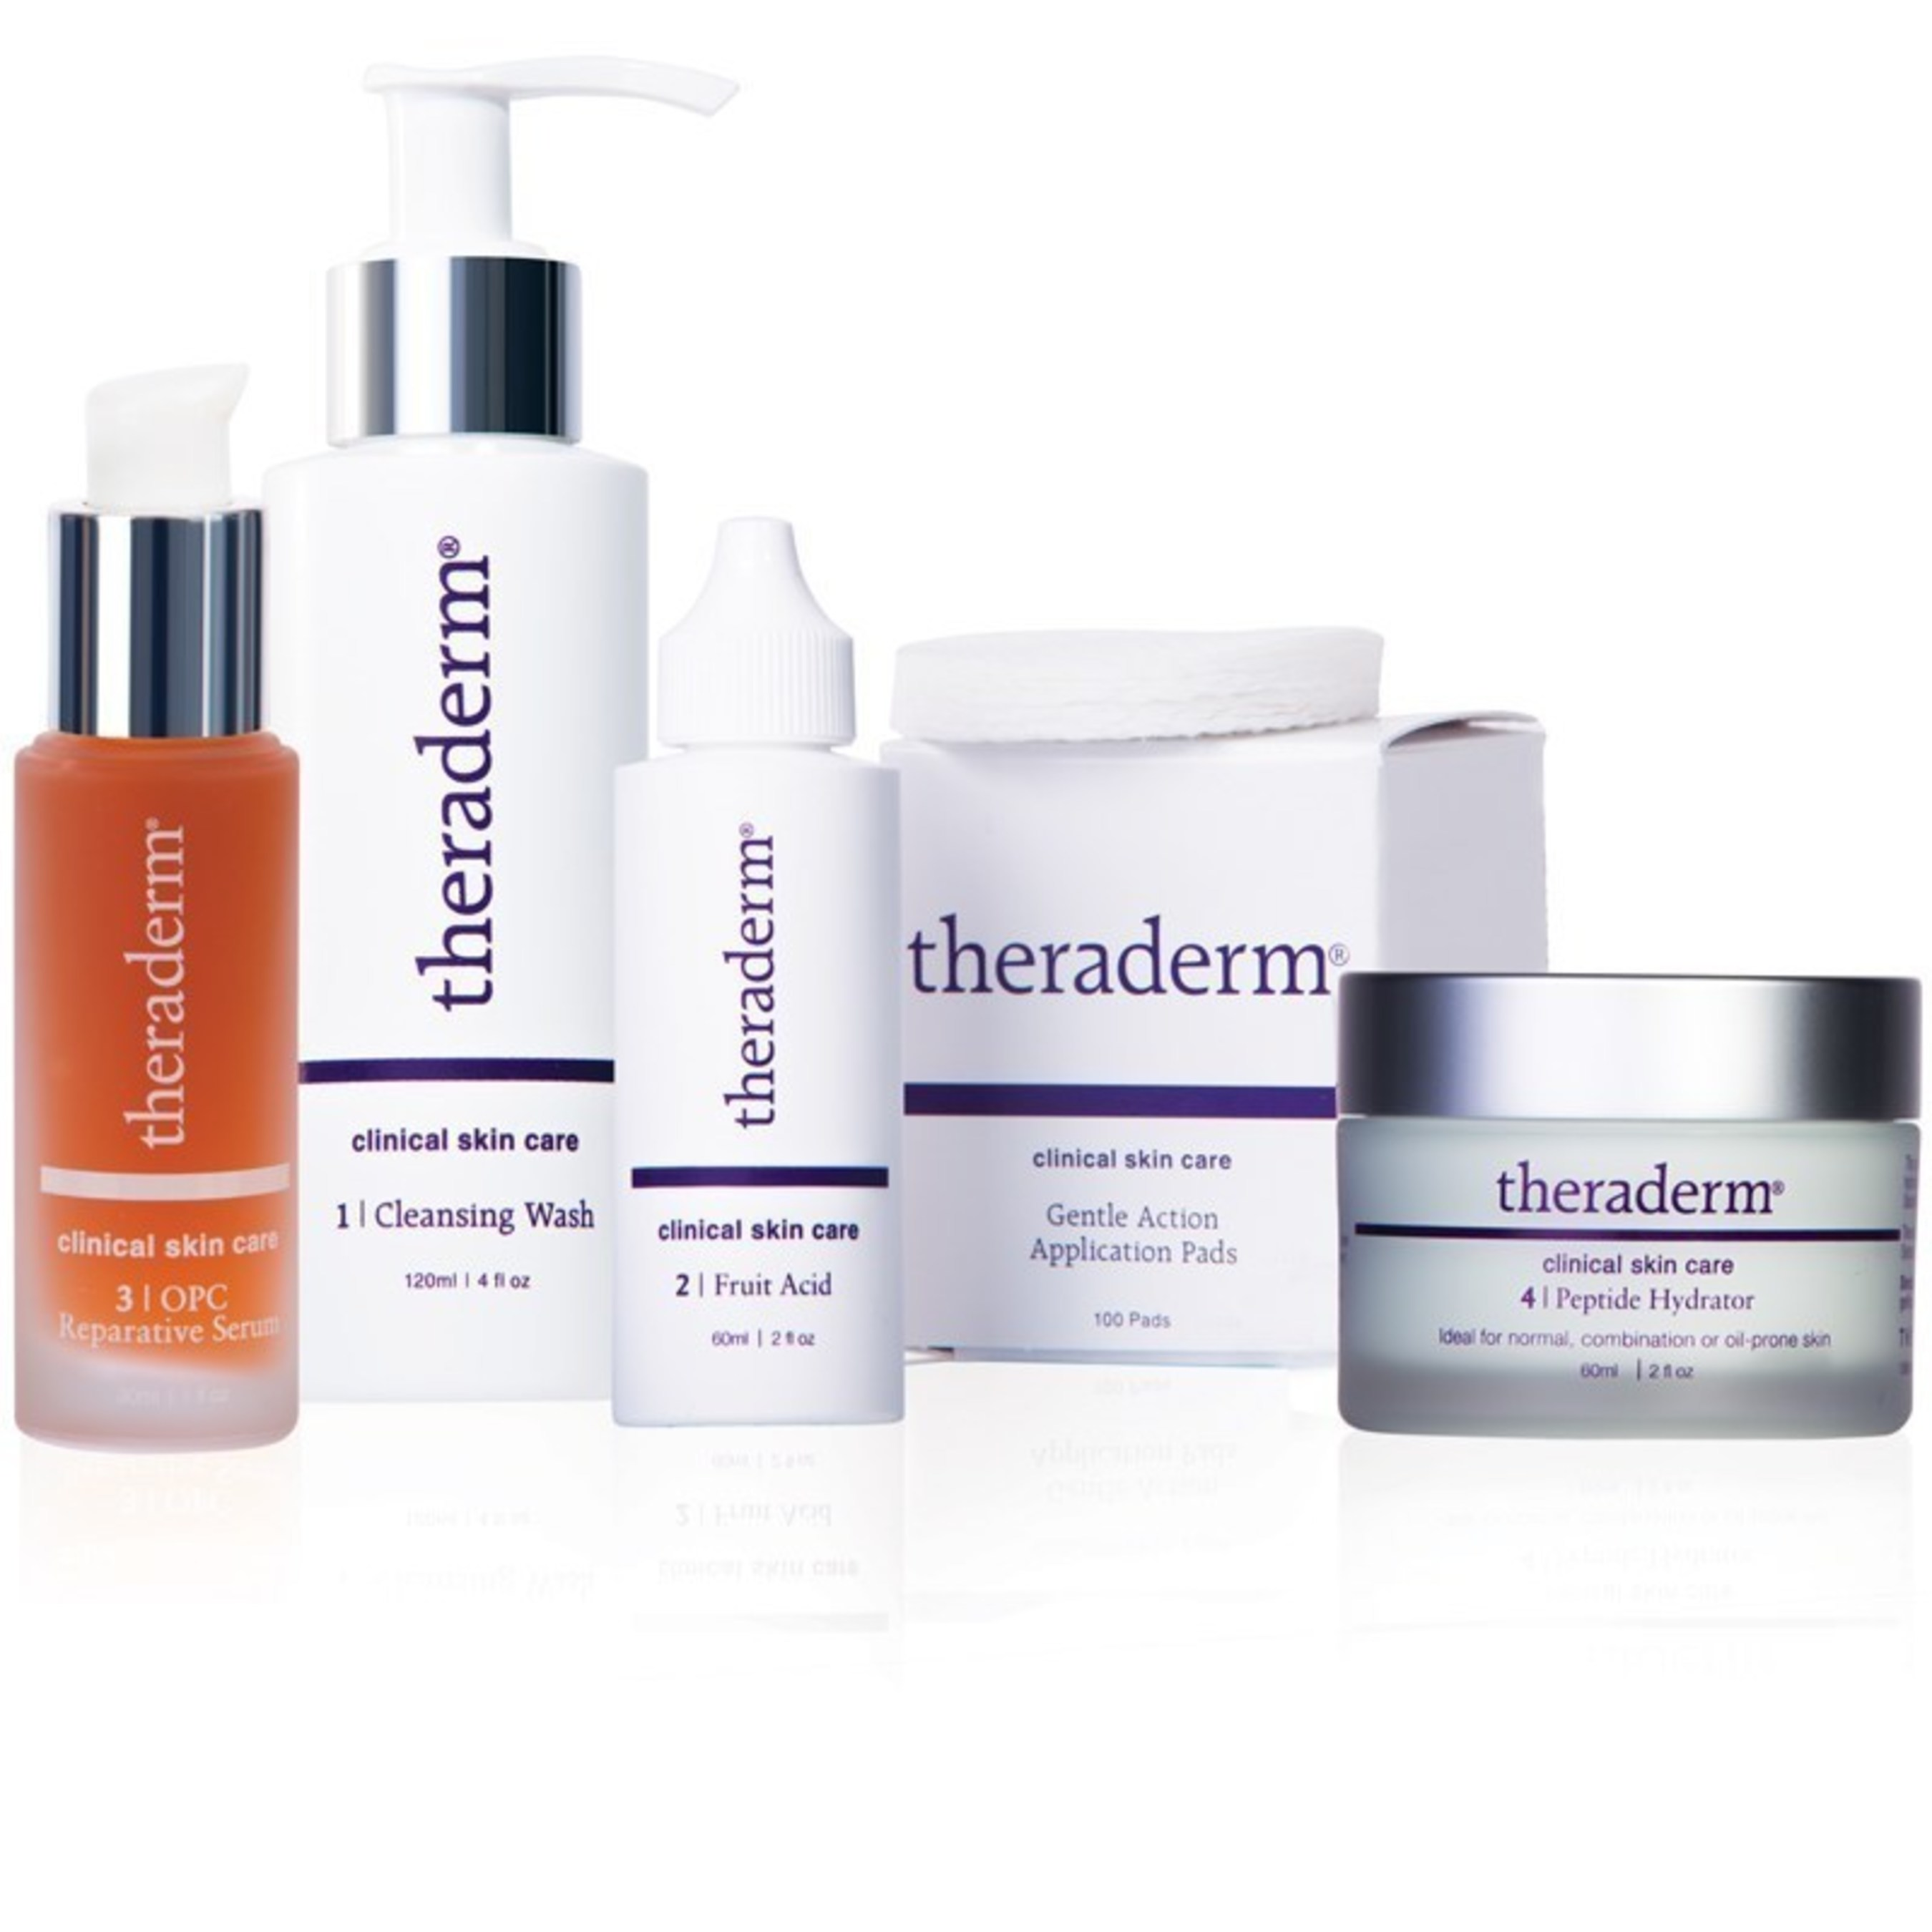 Theraderm Is Transparent When It Comes To Their Ingredients